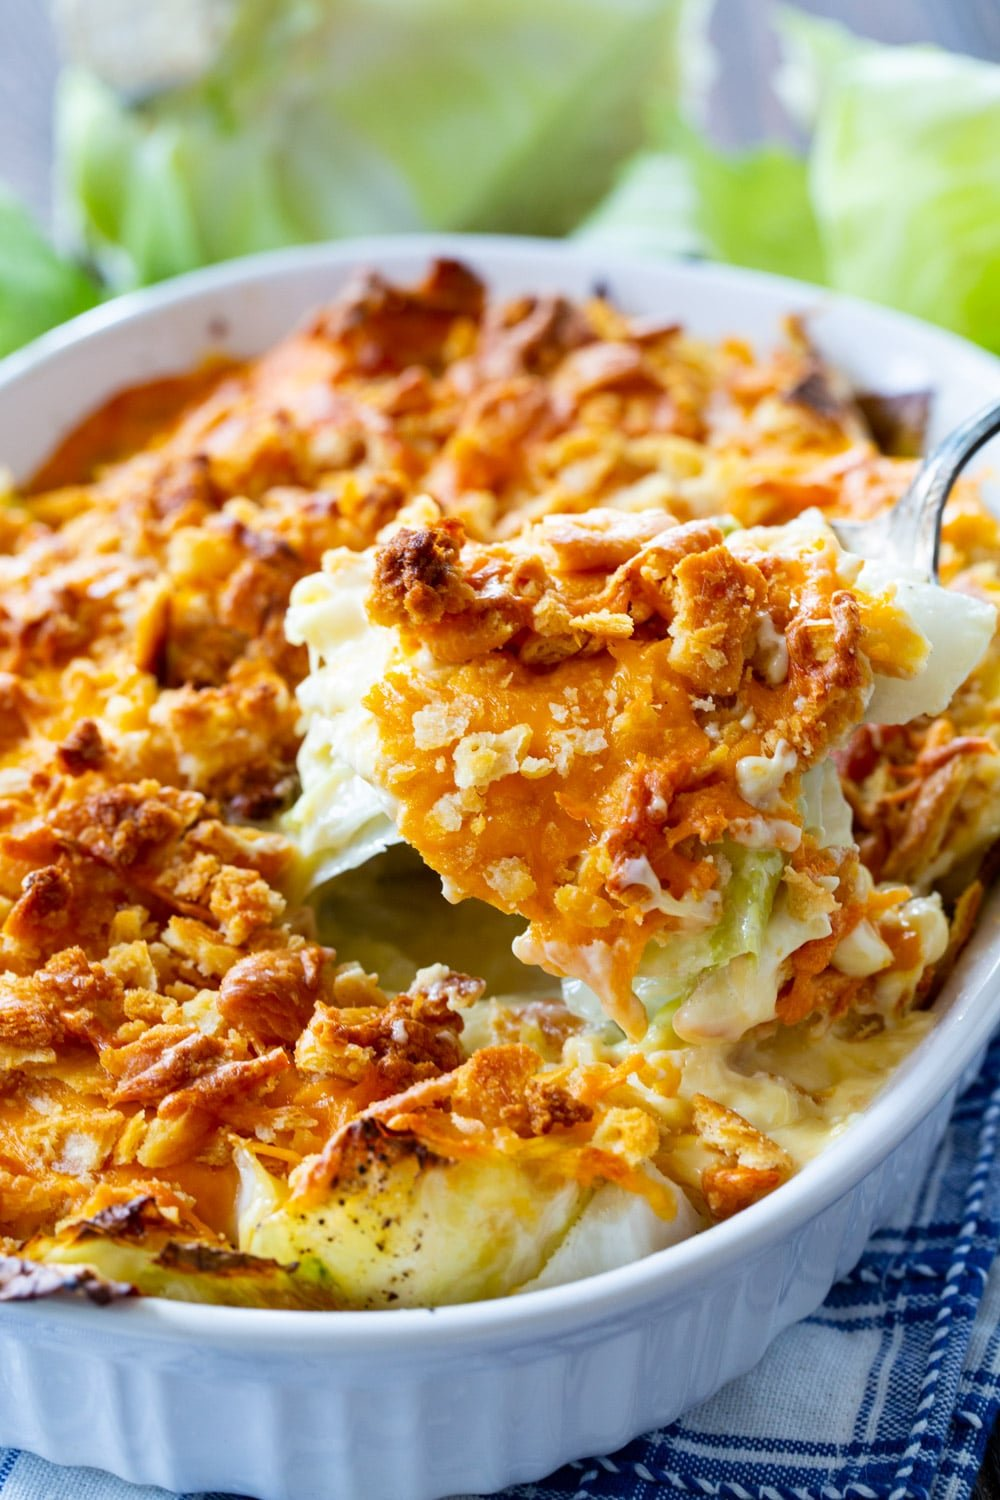 Spoon scooping Old-Fashioned Cabbage Casserole.